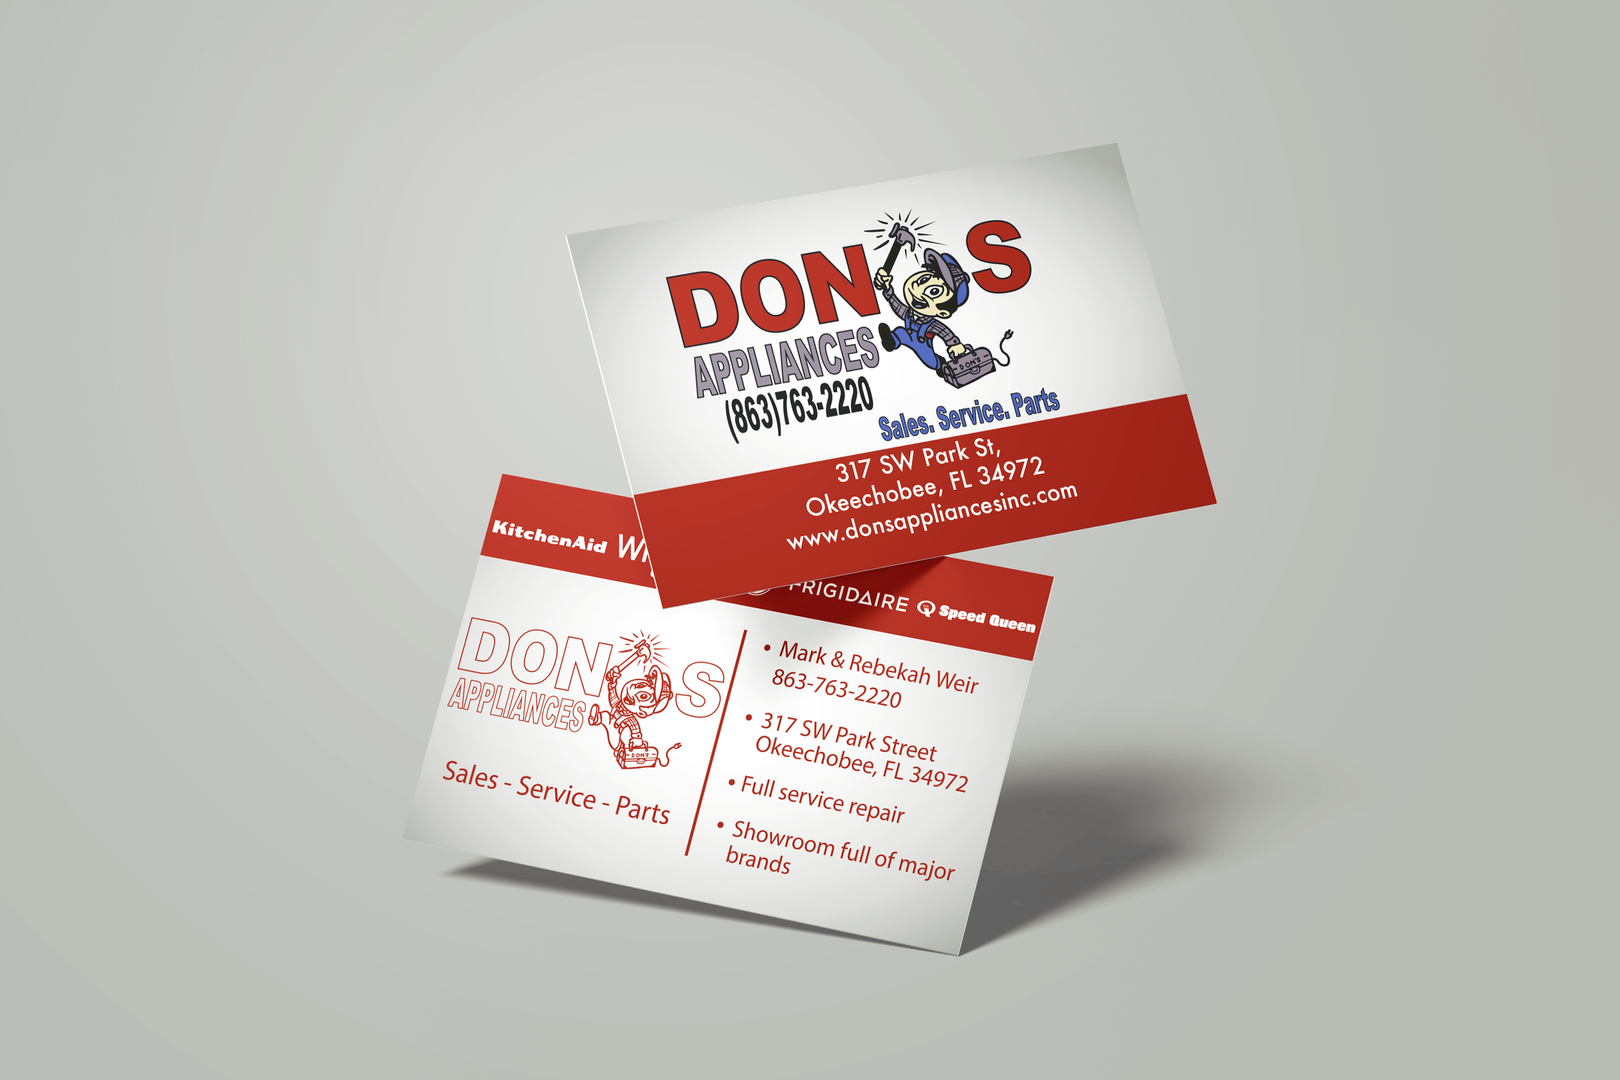 Dons Business Card.png